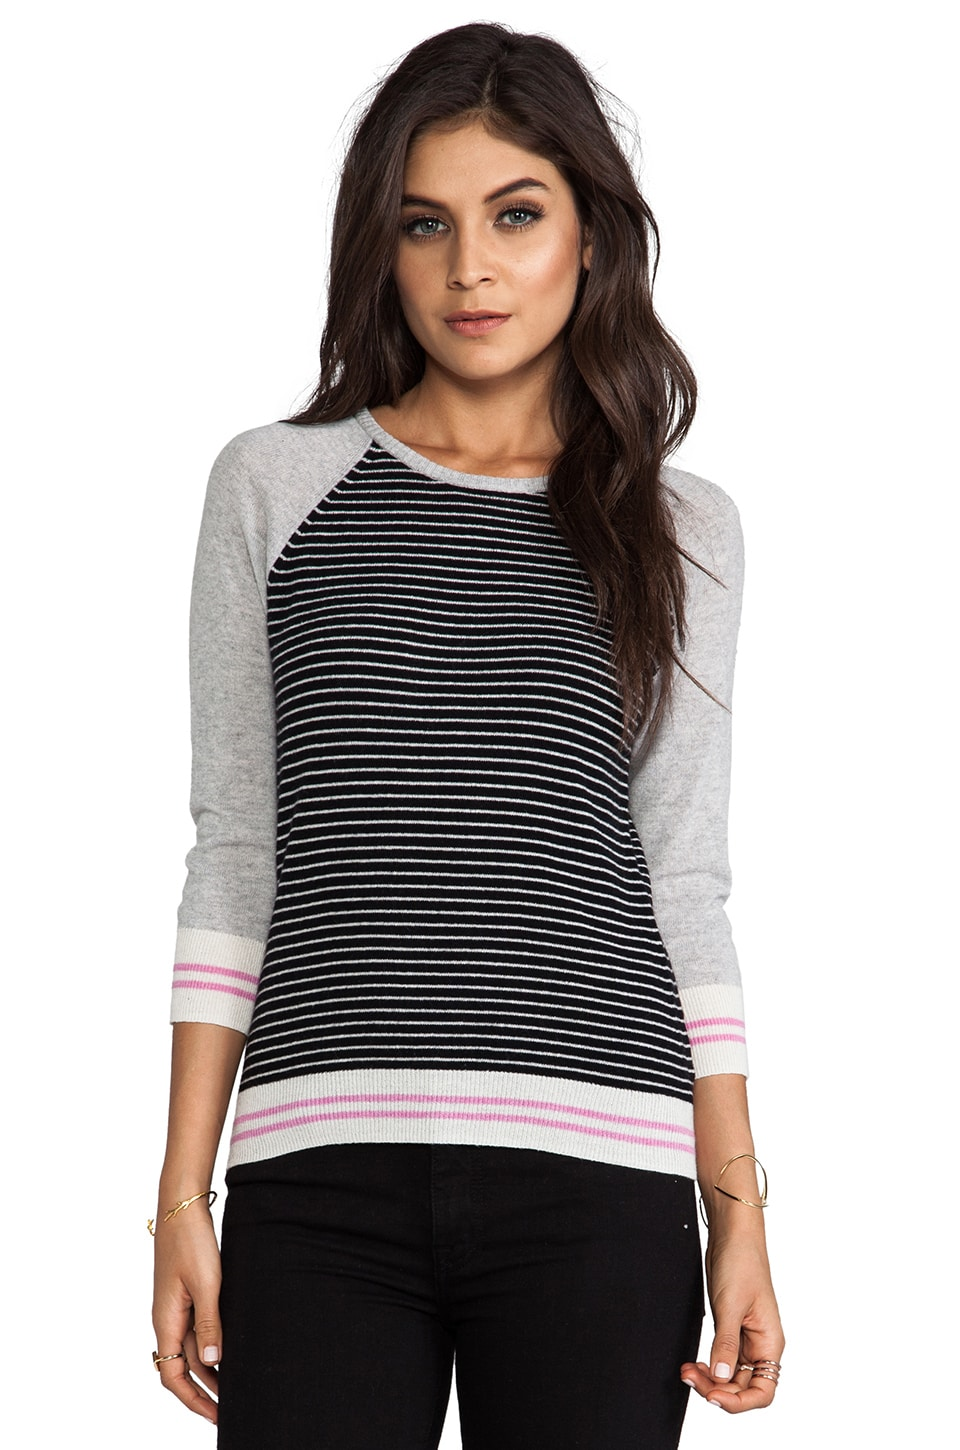 Autumn Cashmere Striped Zip Back Sweater in Black Combo